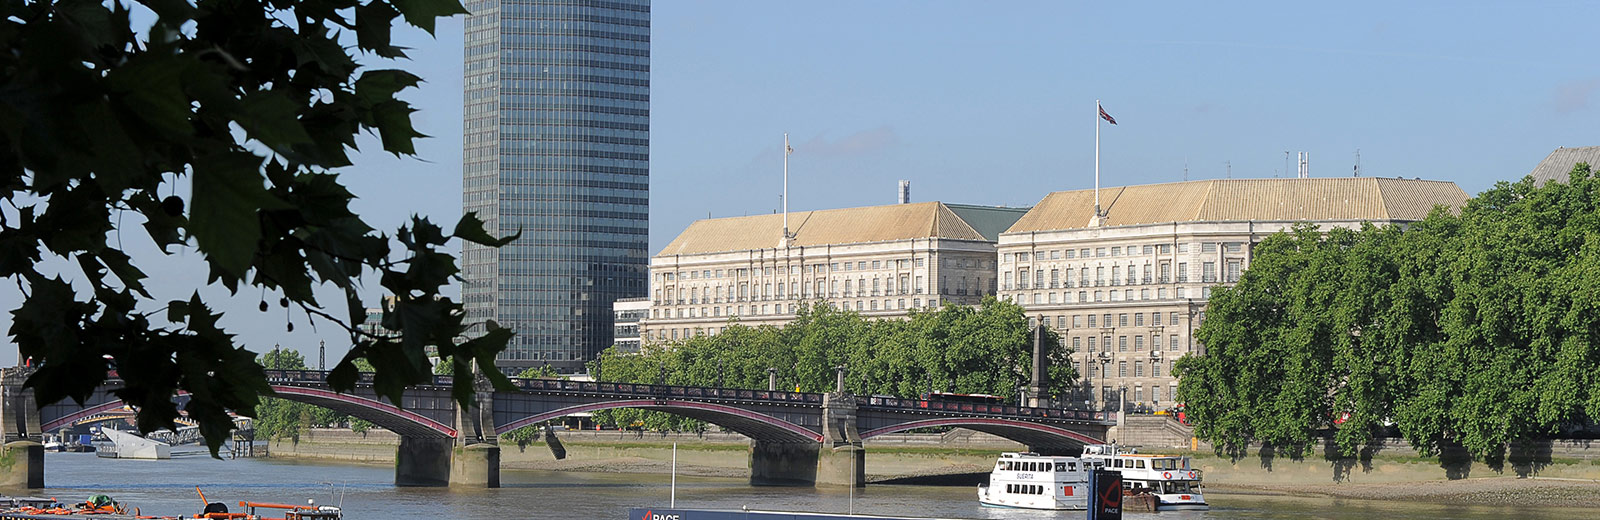 View across the river of Thames House